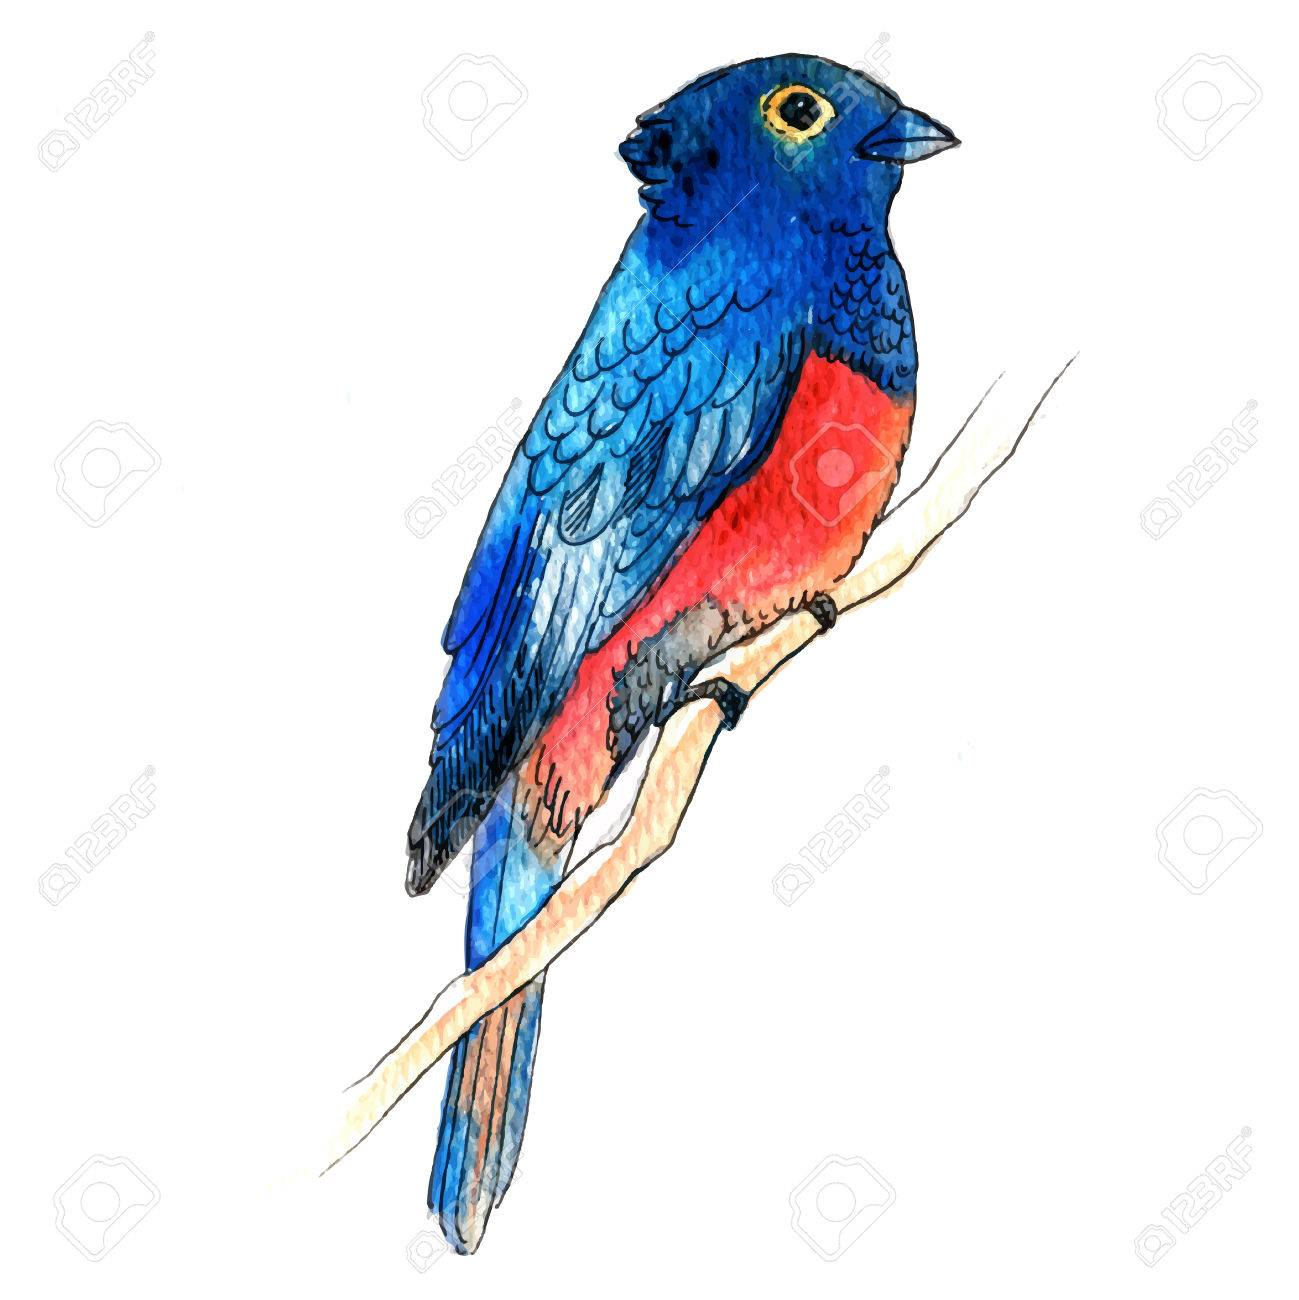 watercolor style vector illustration of pretty bird on white